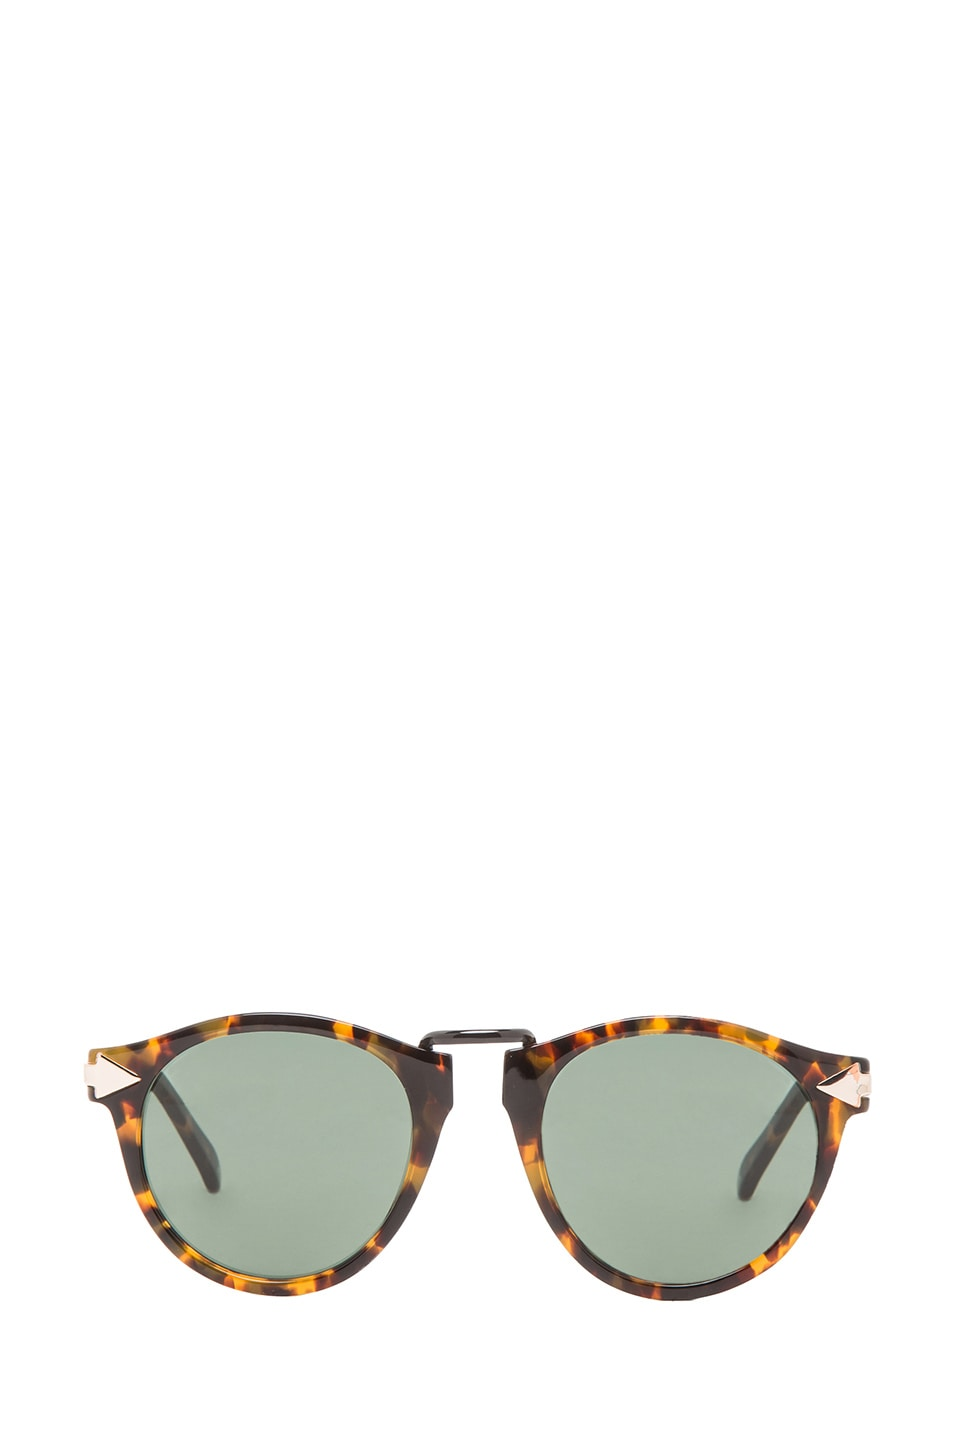 Image 1 of Karen Walker Helter Skelter Sunglasses in Crazy Tortoise